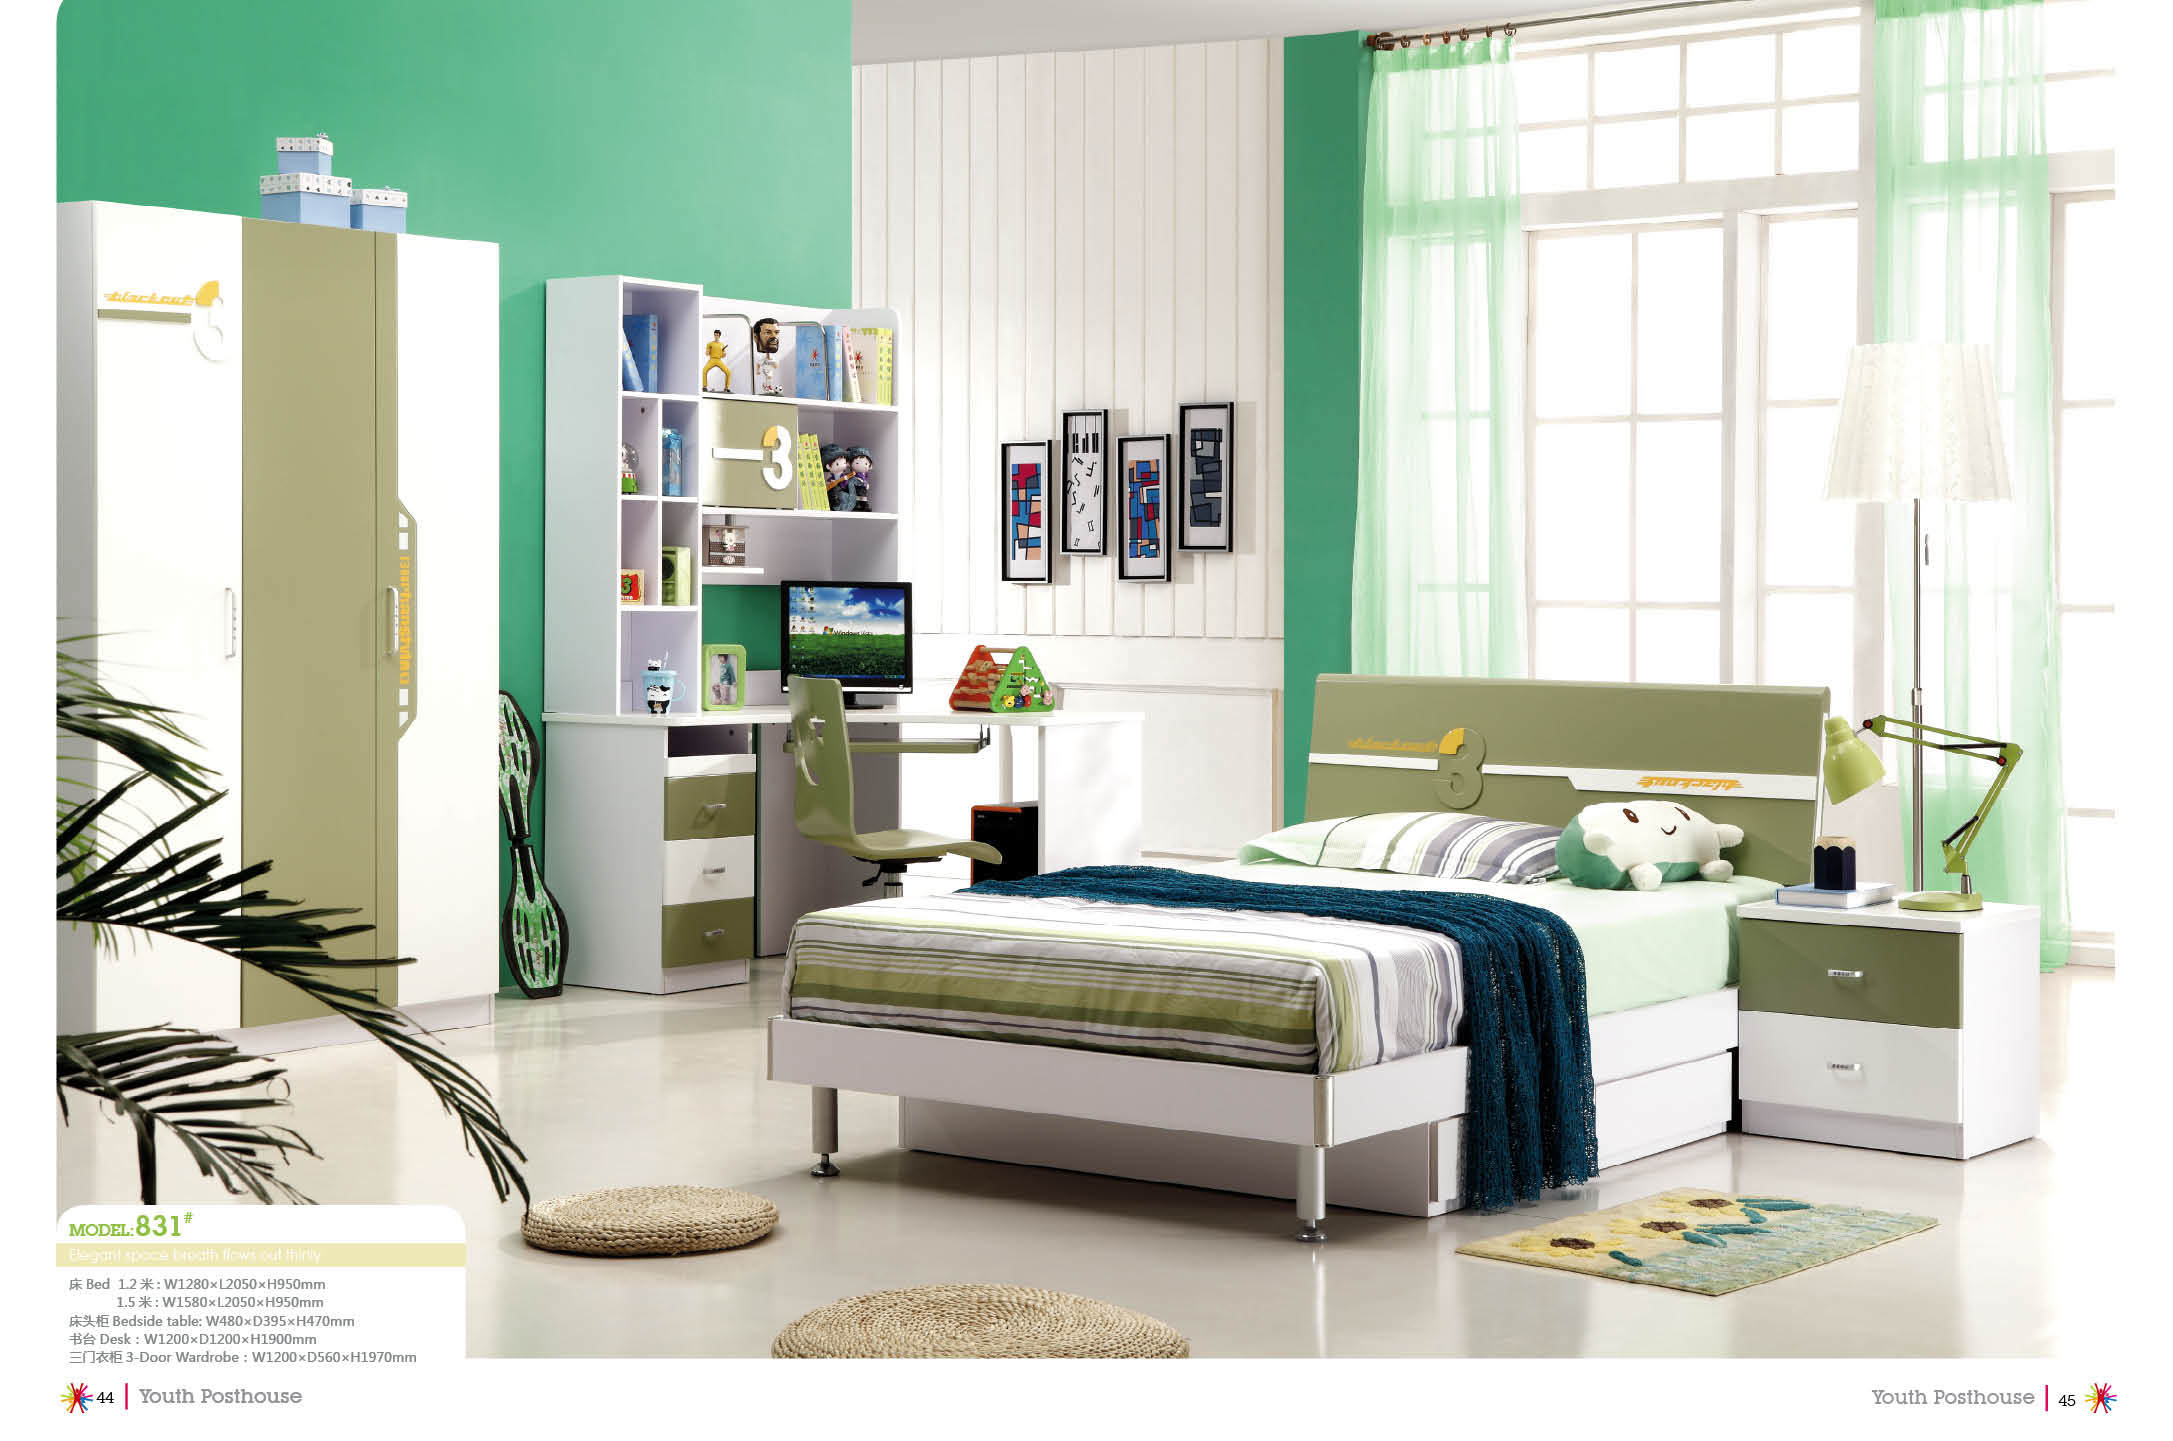 China kids bedroom set children furniture 831 china for Kids bedroom furniture sets